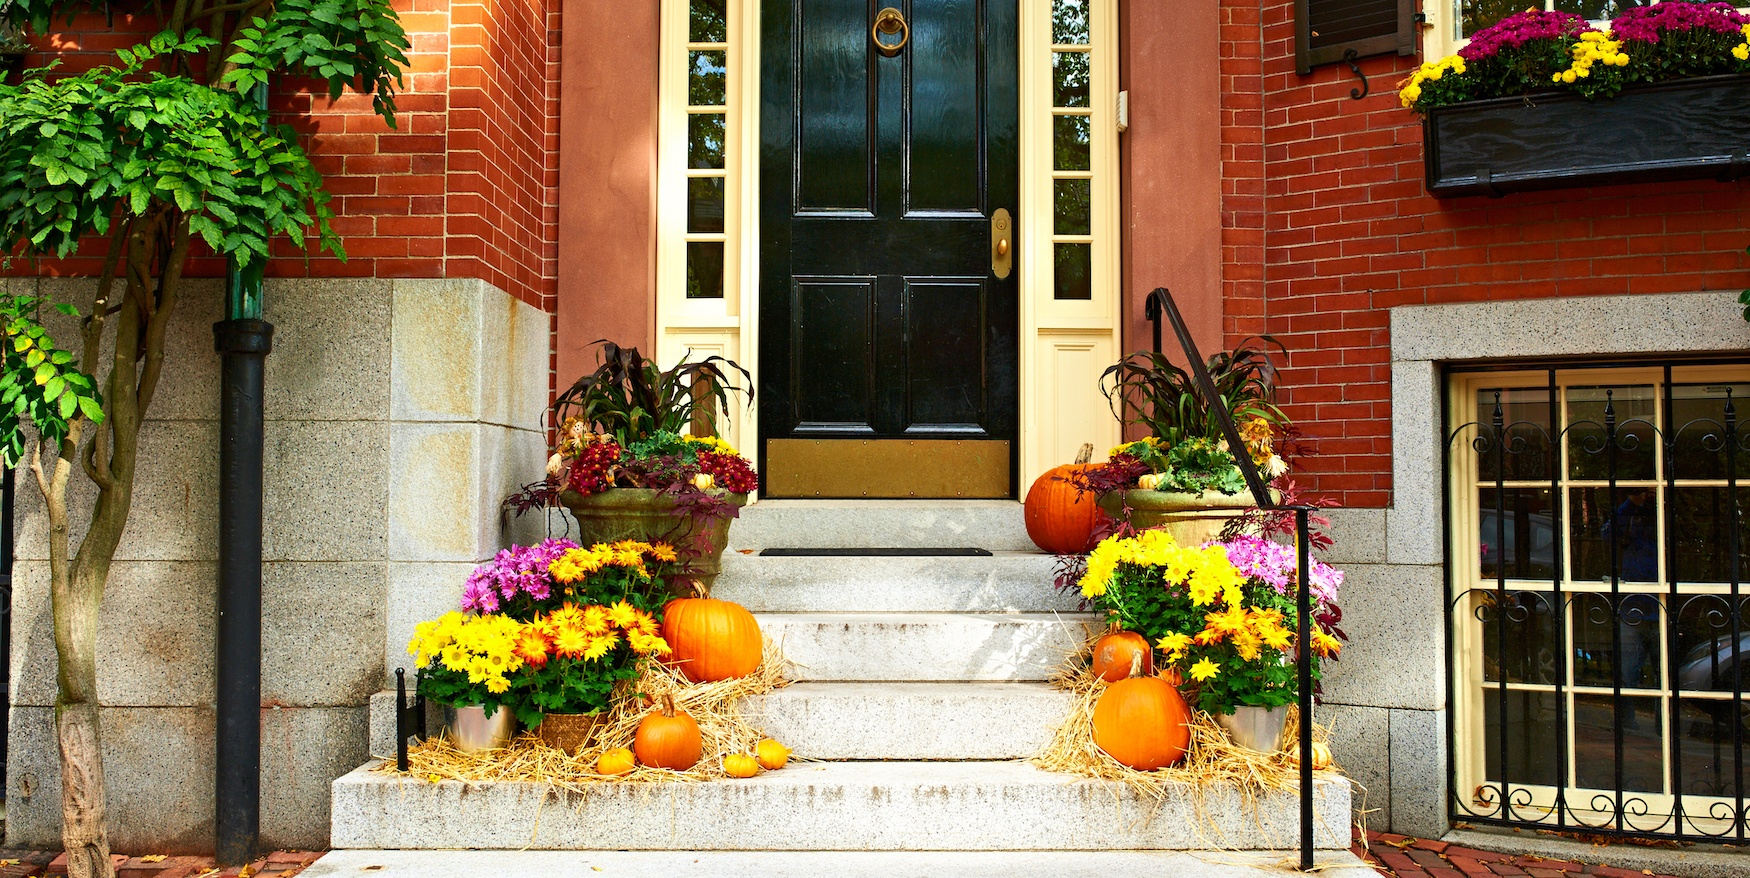 a photo of a house's front door decorations for halloween